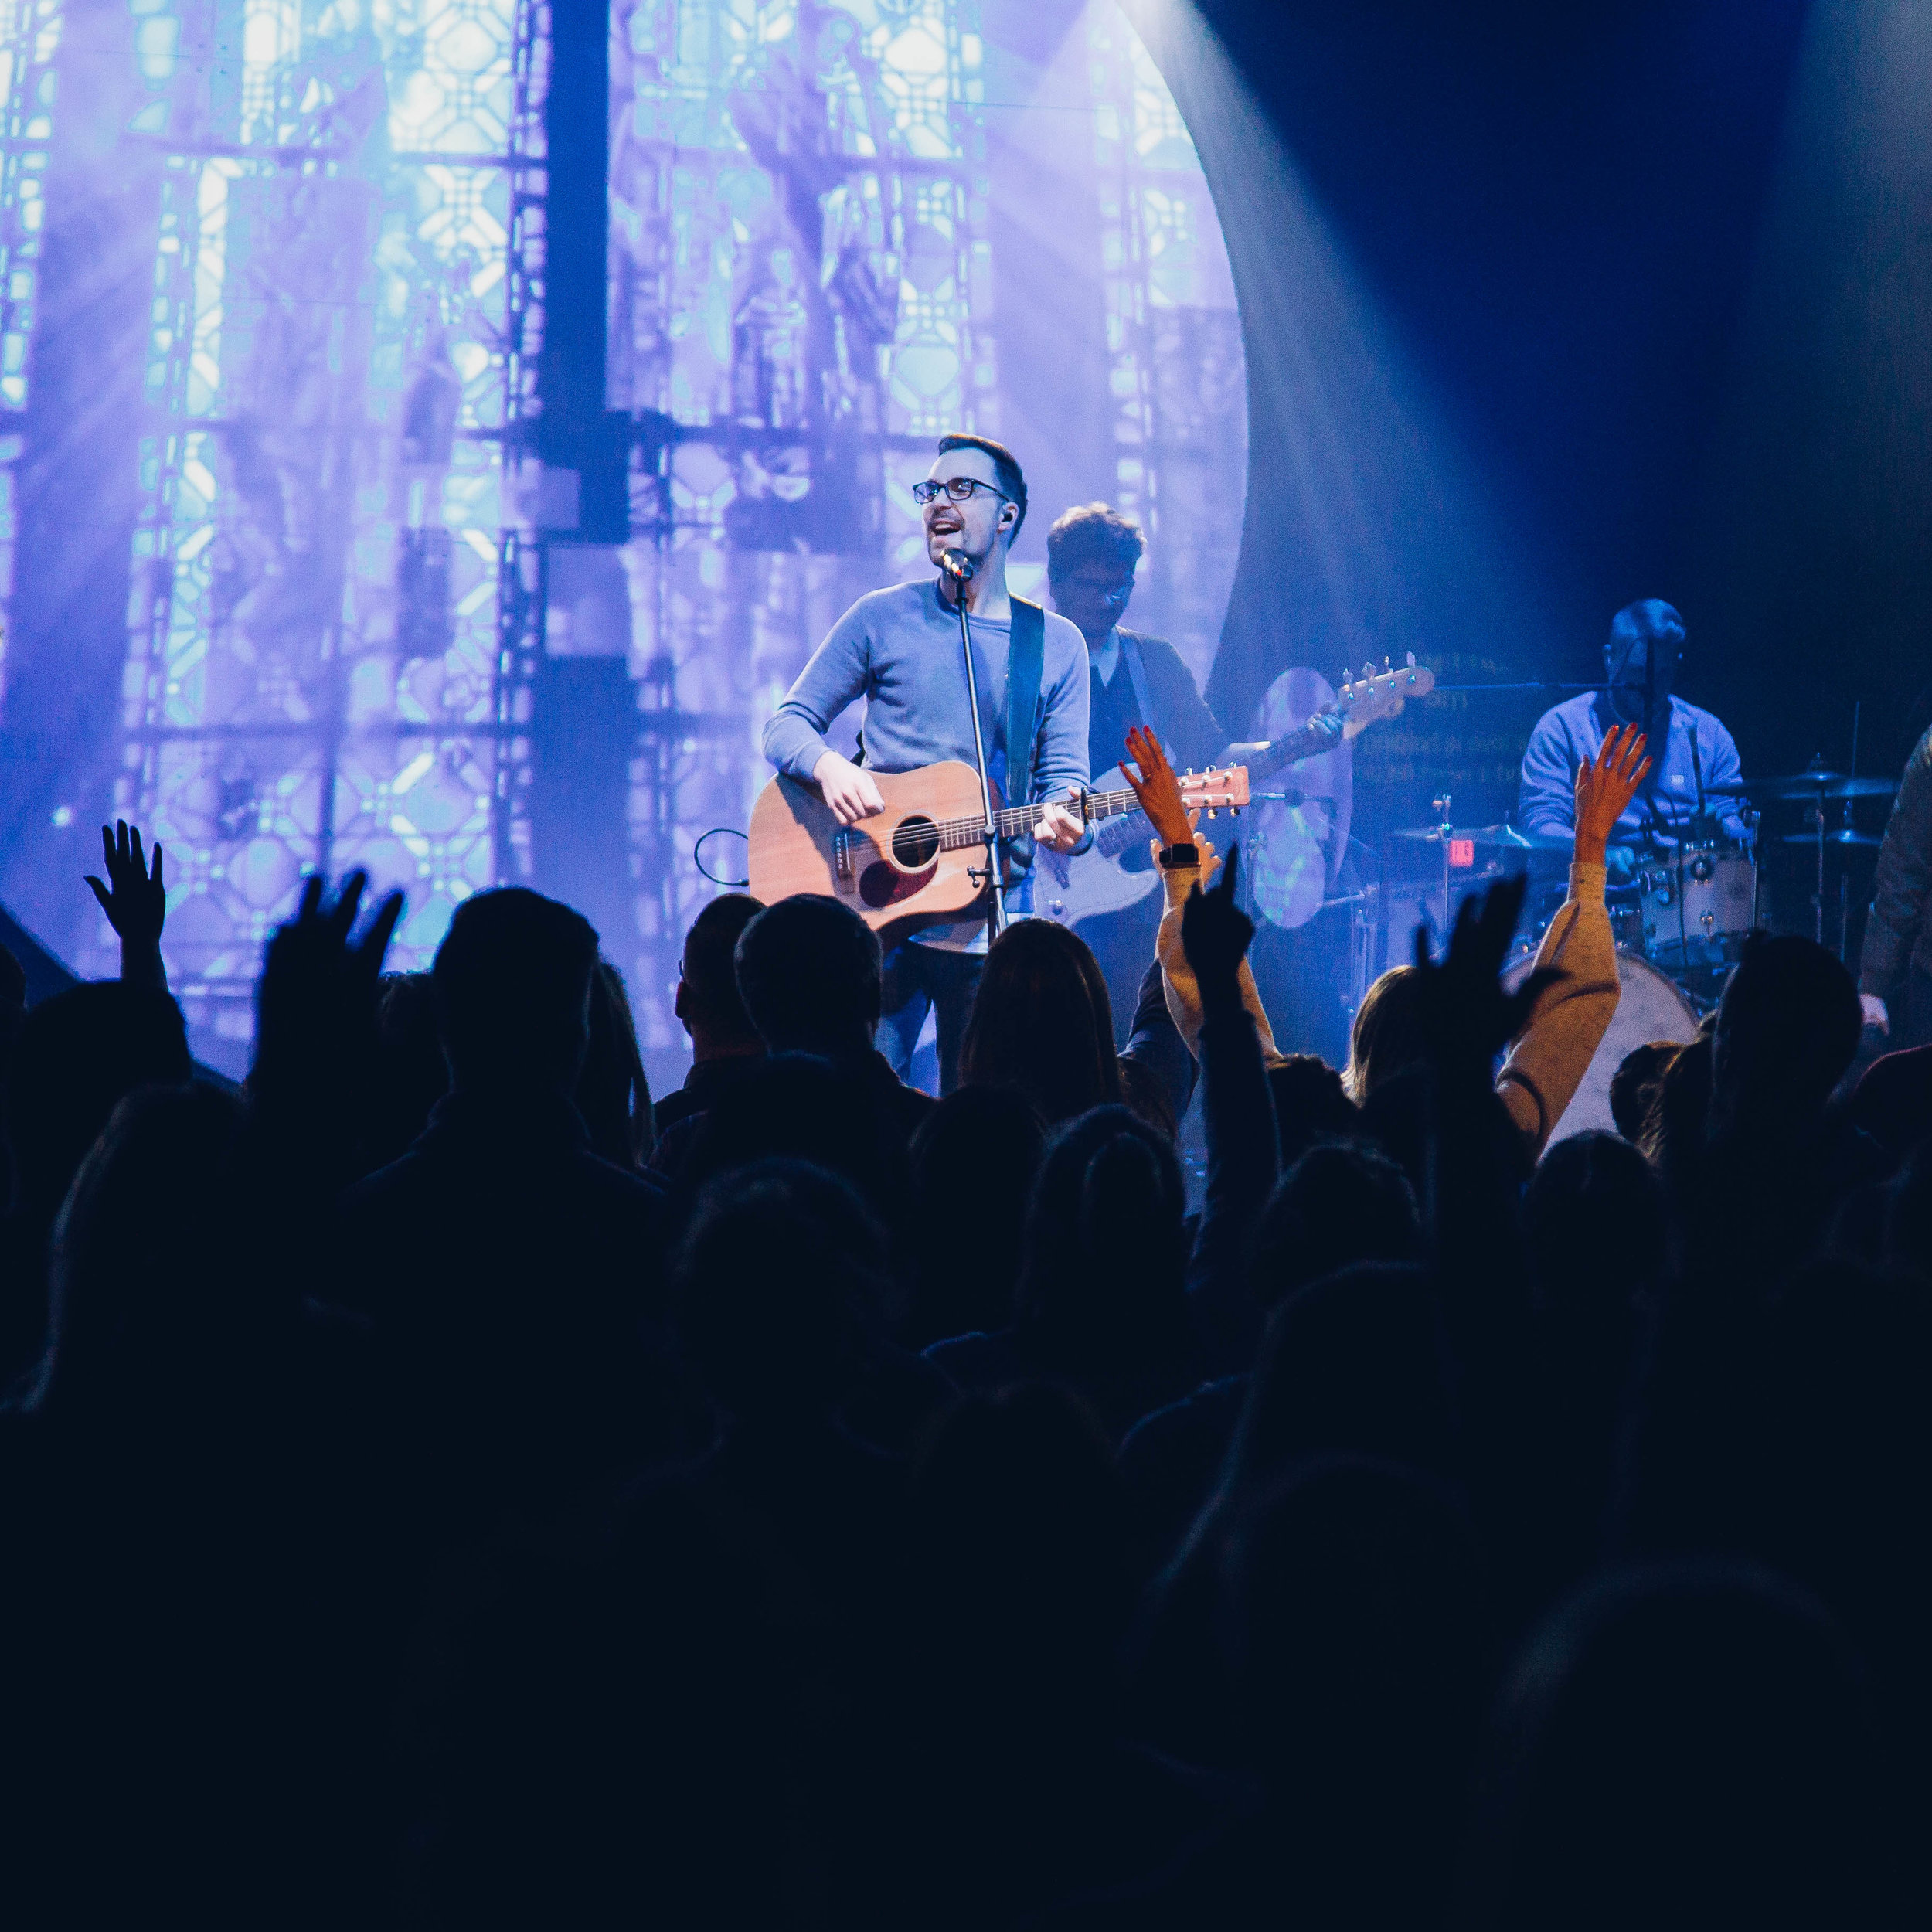 First Wednesday - We come together on the first Wednesday of the month for an incredible worship experience! Join us for prayer, communion, and an inspiring message at 7:00PM. XRKids is open for ages 0-11.